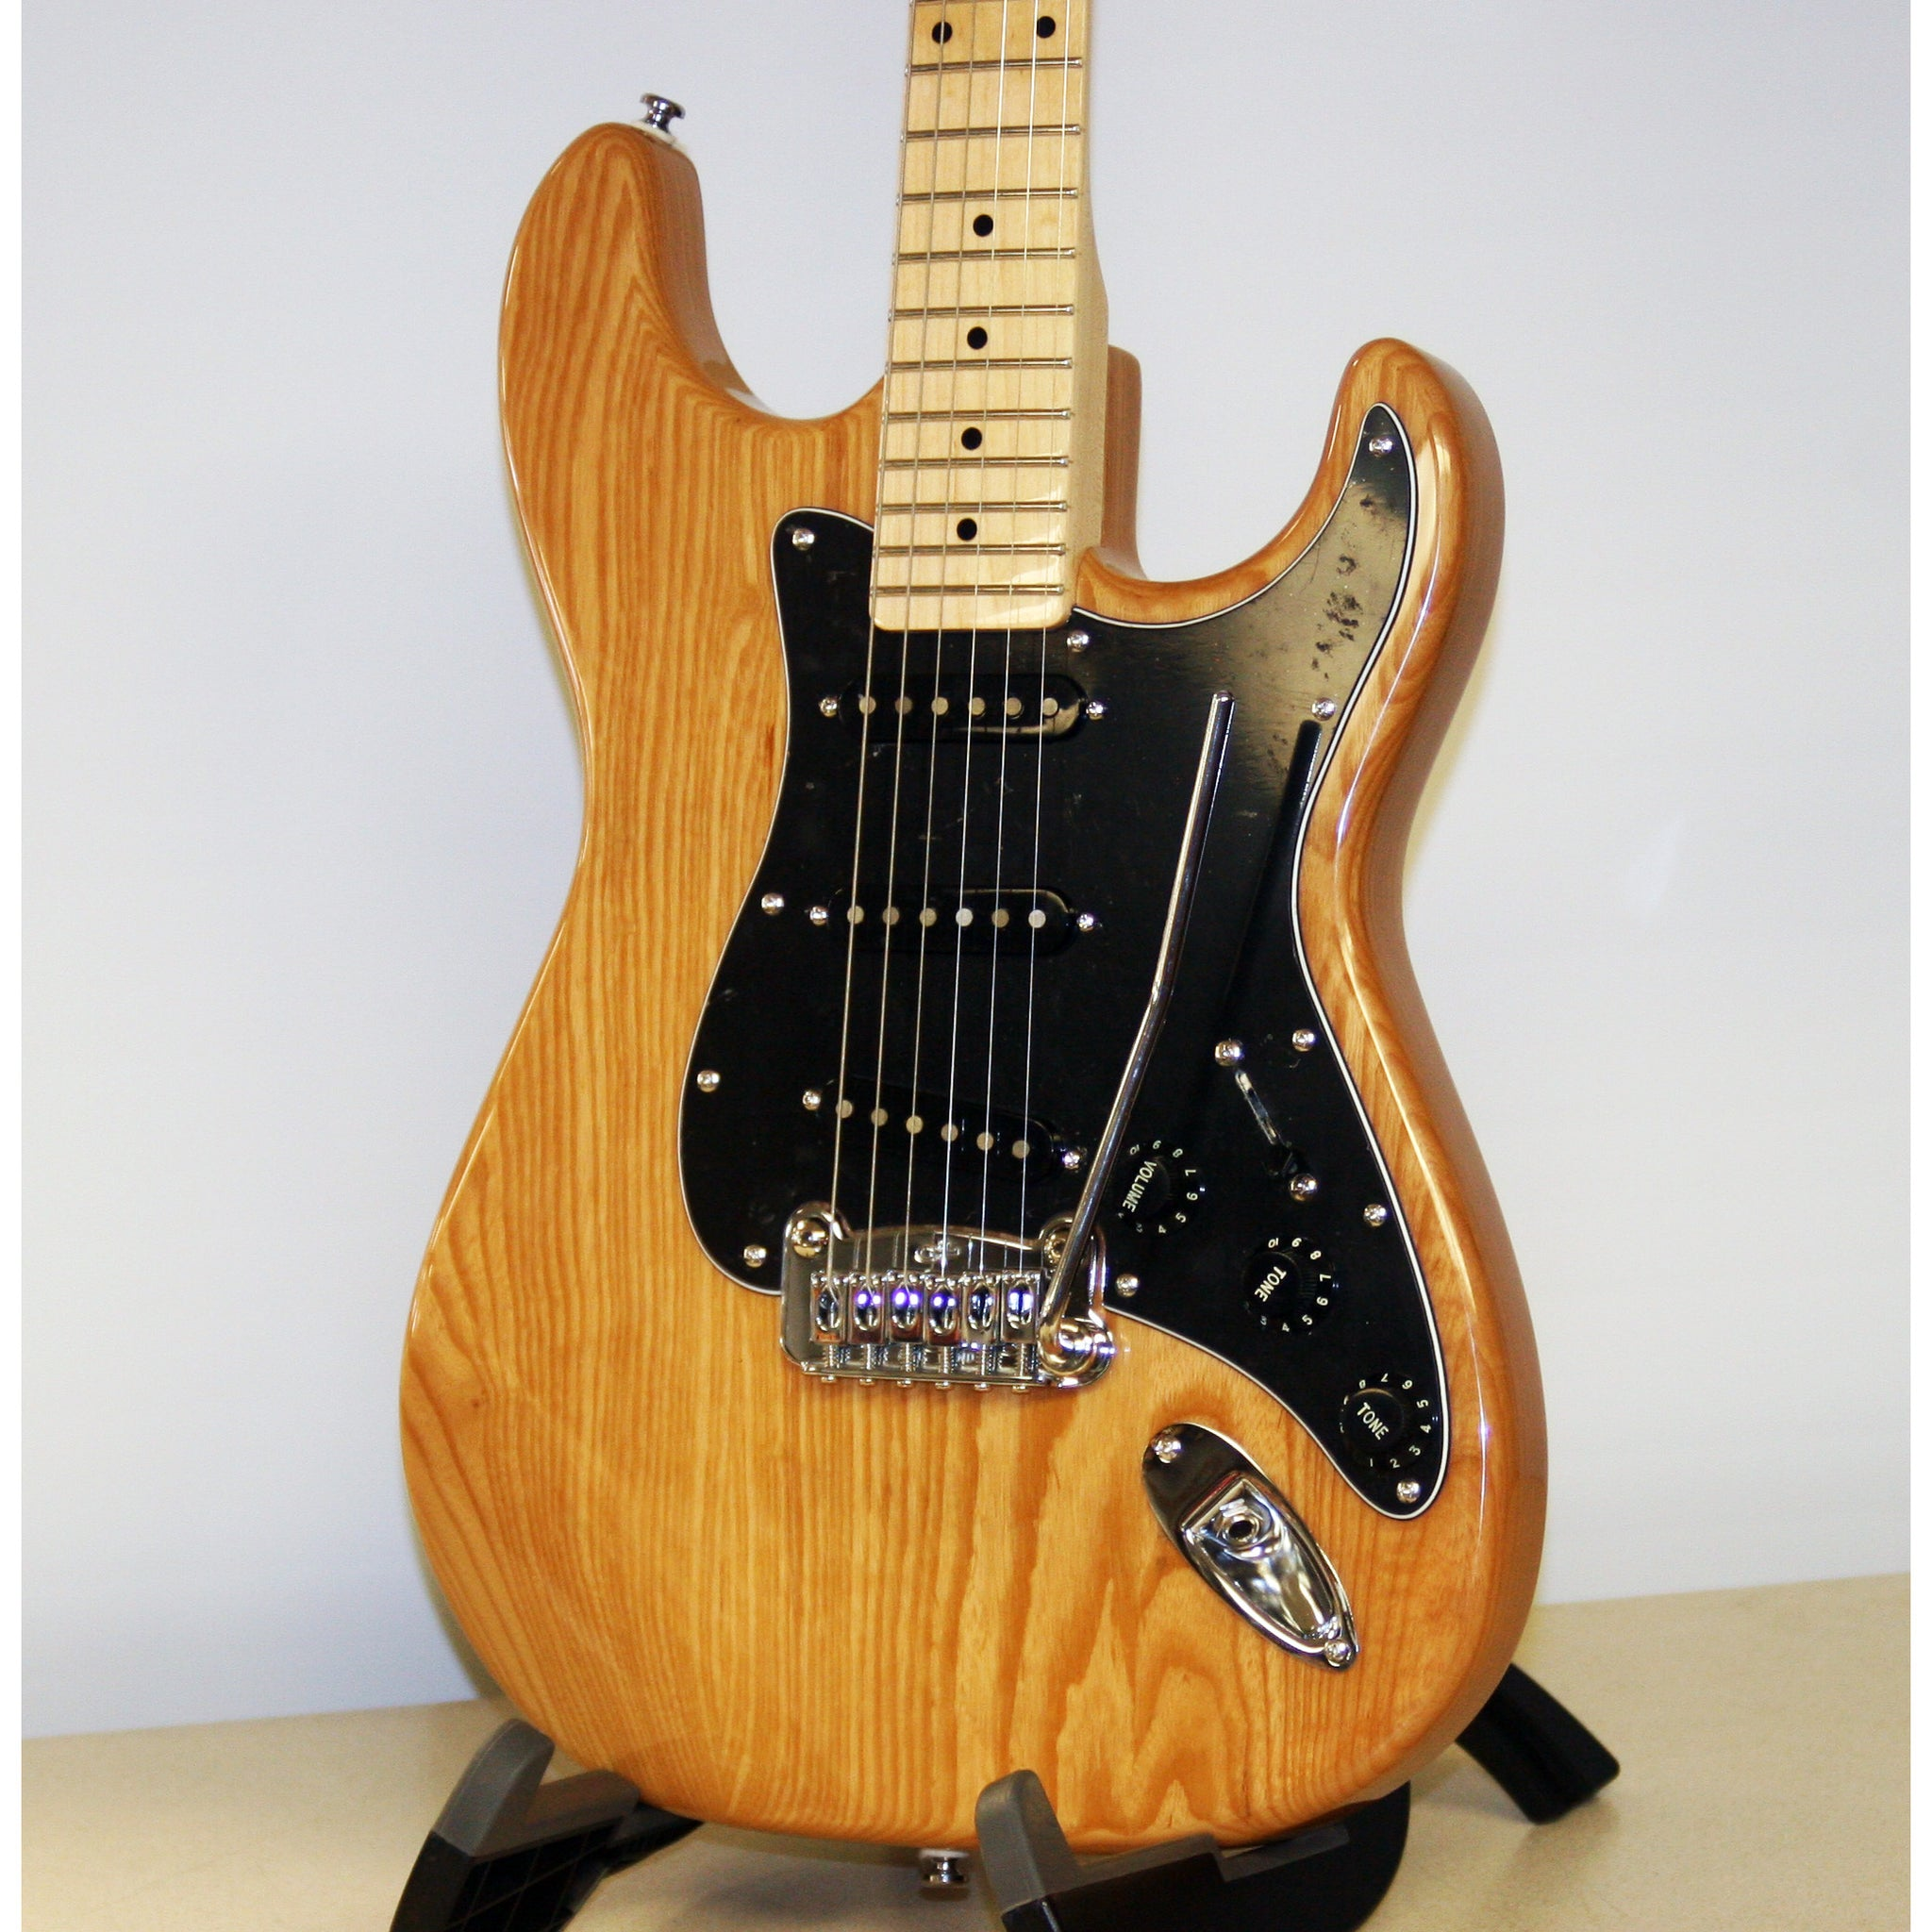 G&L Tribute Legacy in Natural Ash, Just Gorgeous